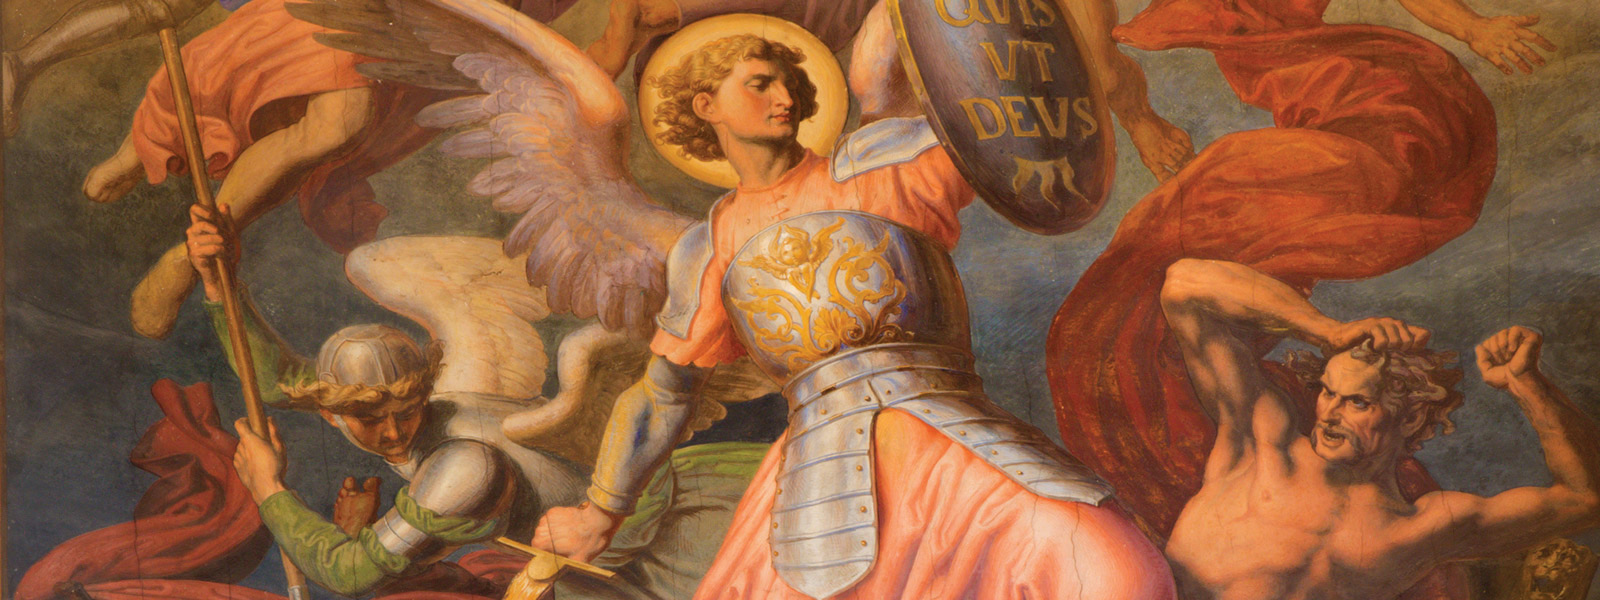 Painting of angel fighting with sword and shield